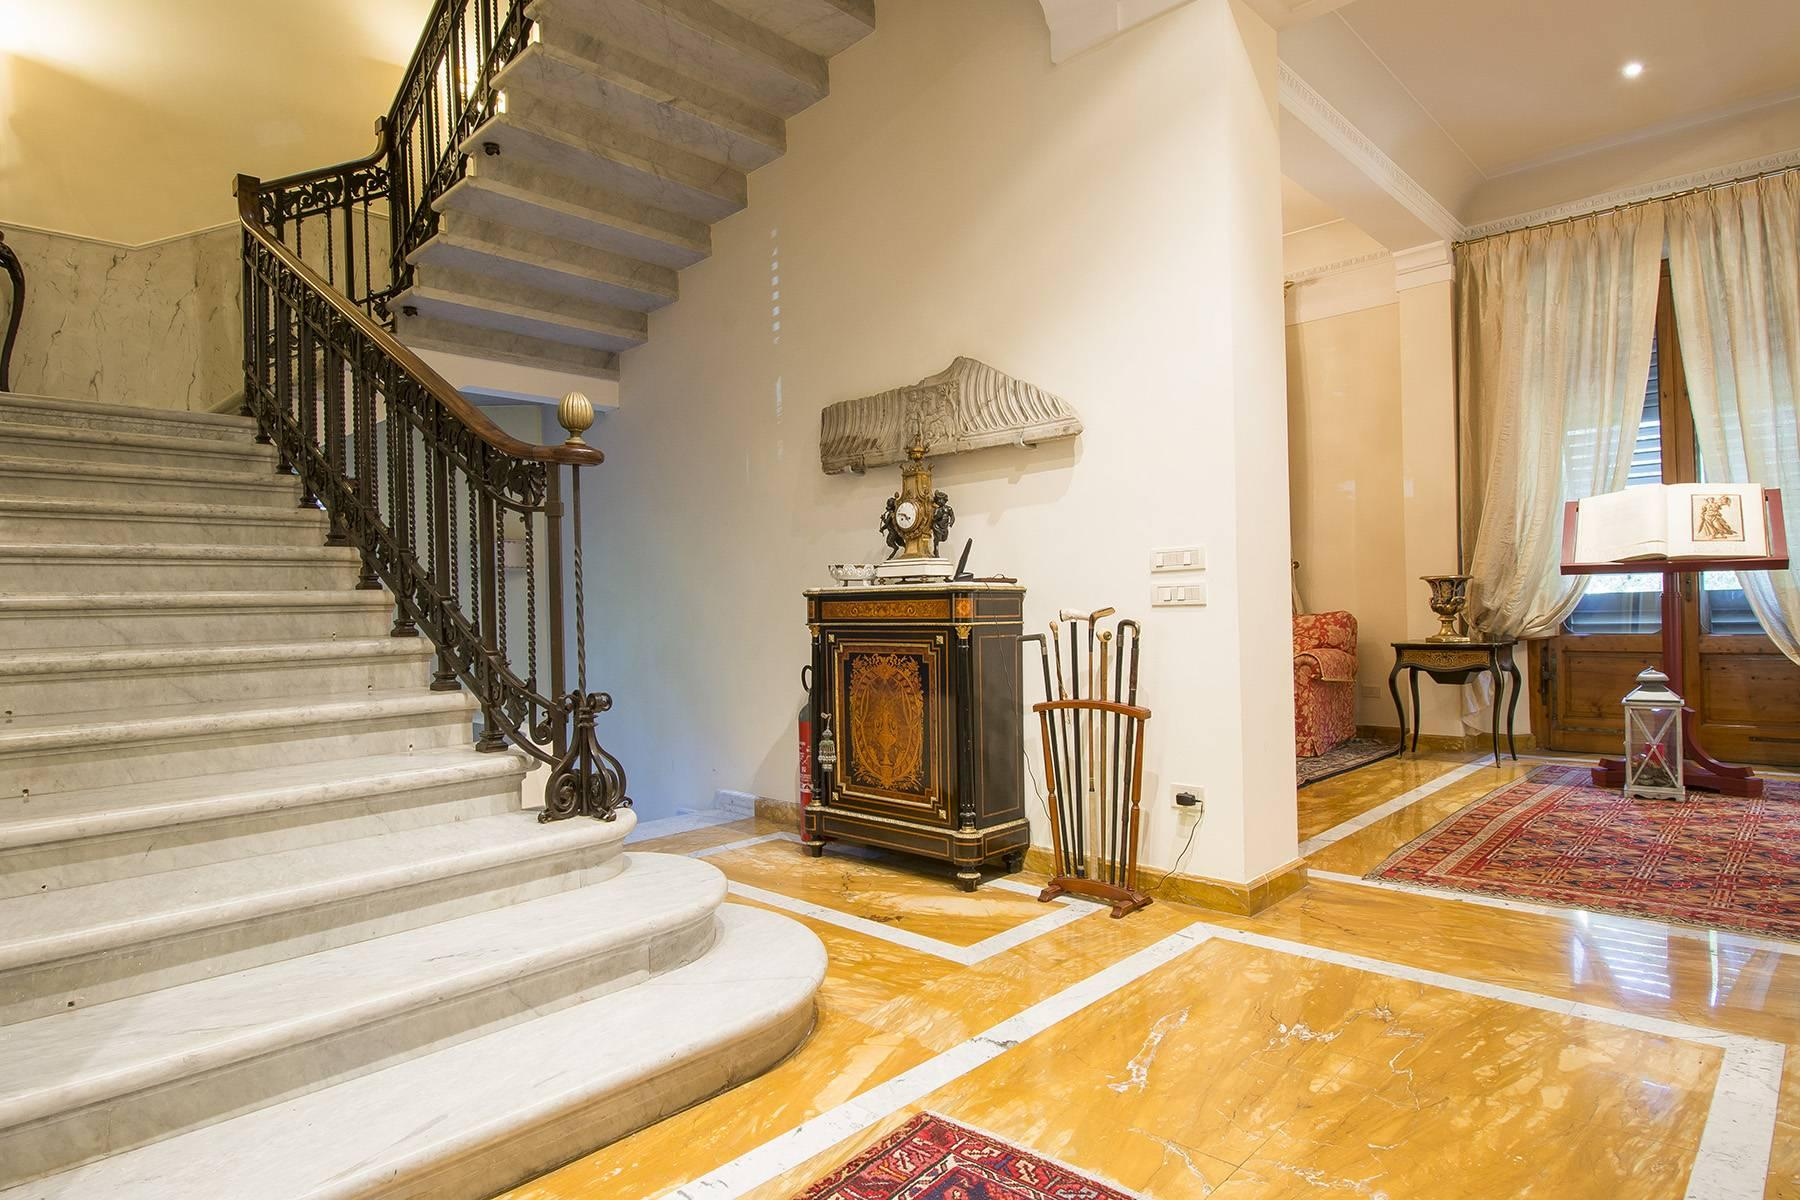 Luxury Art Nouveau Villa in the heart of Montecatini Terme - 14